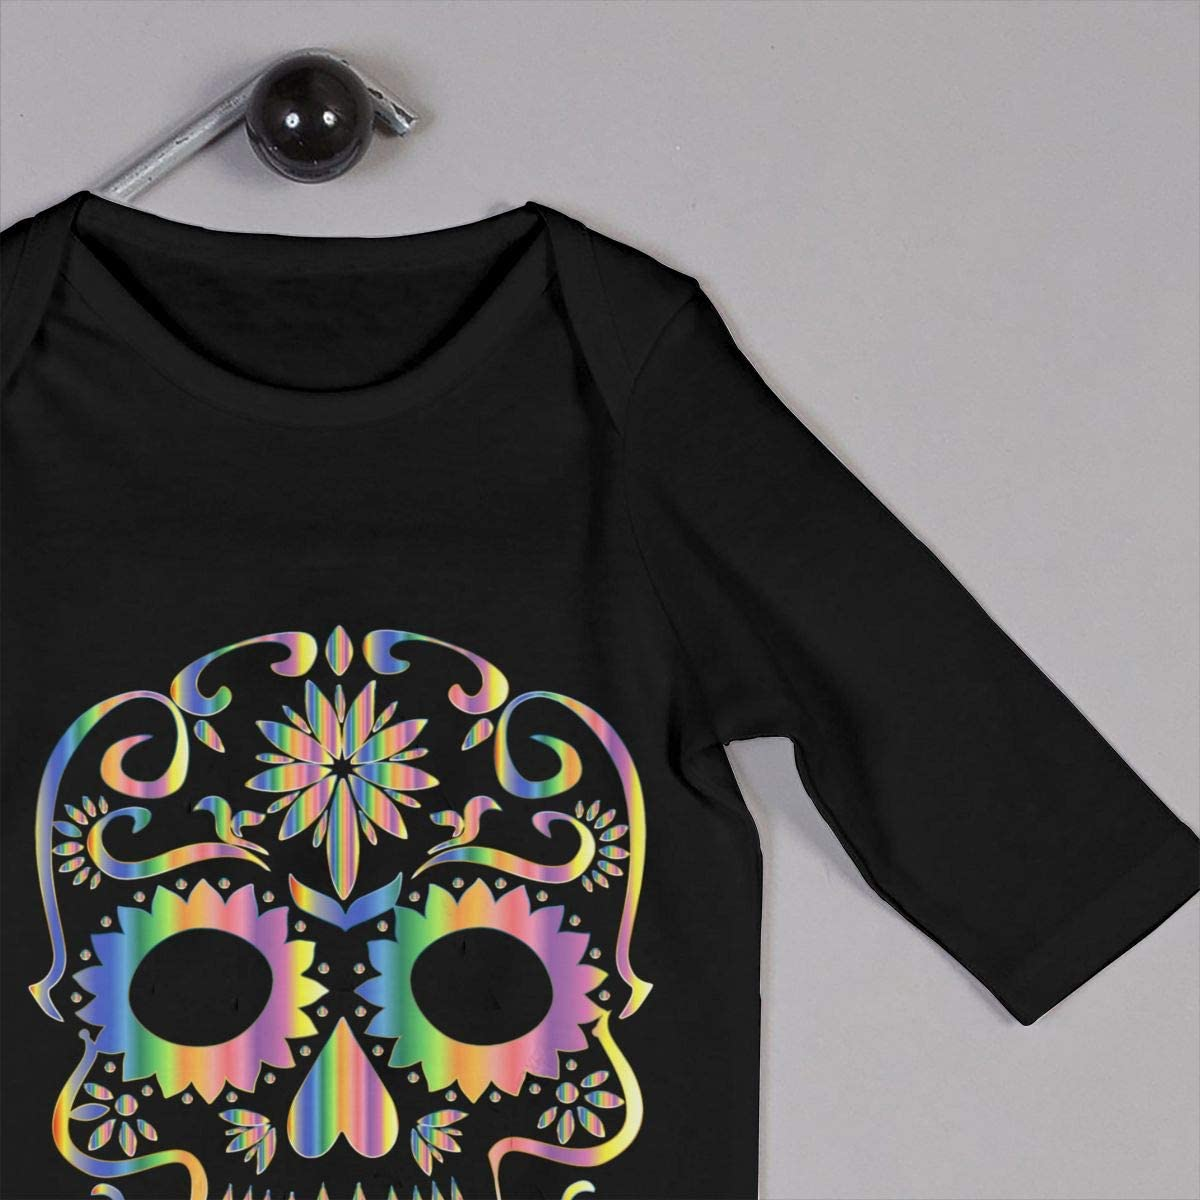 Psychedelic Sugar Skull Silhouette Printed Newborn Infant Baby Boy Girl Bodysuit Long Sleeve Rompers Black